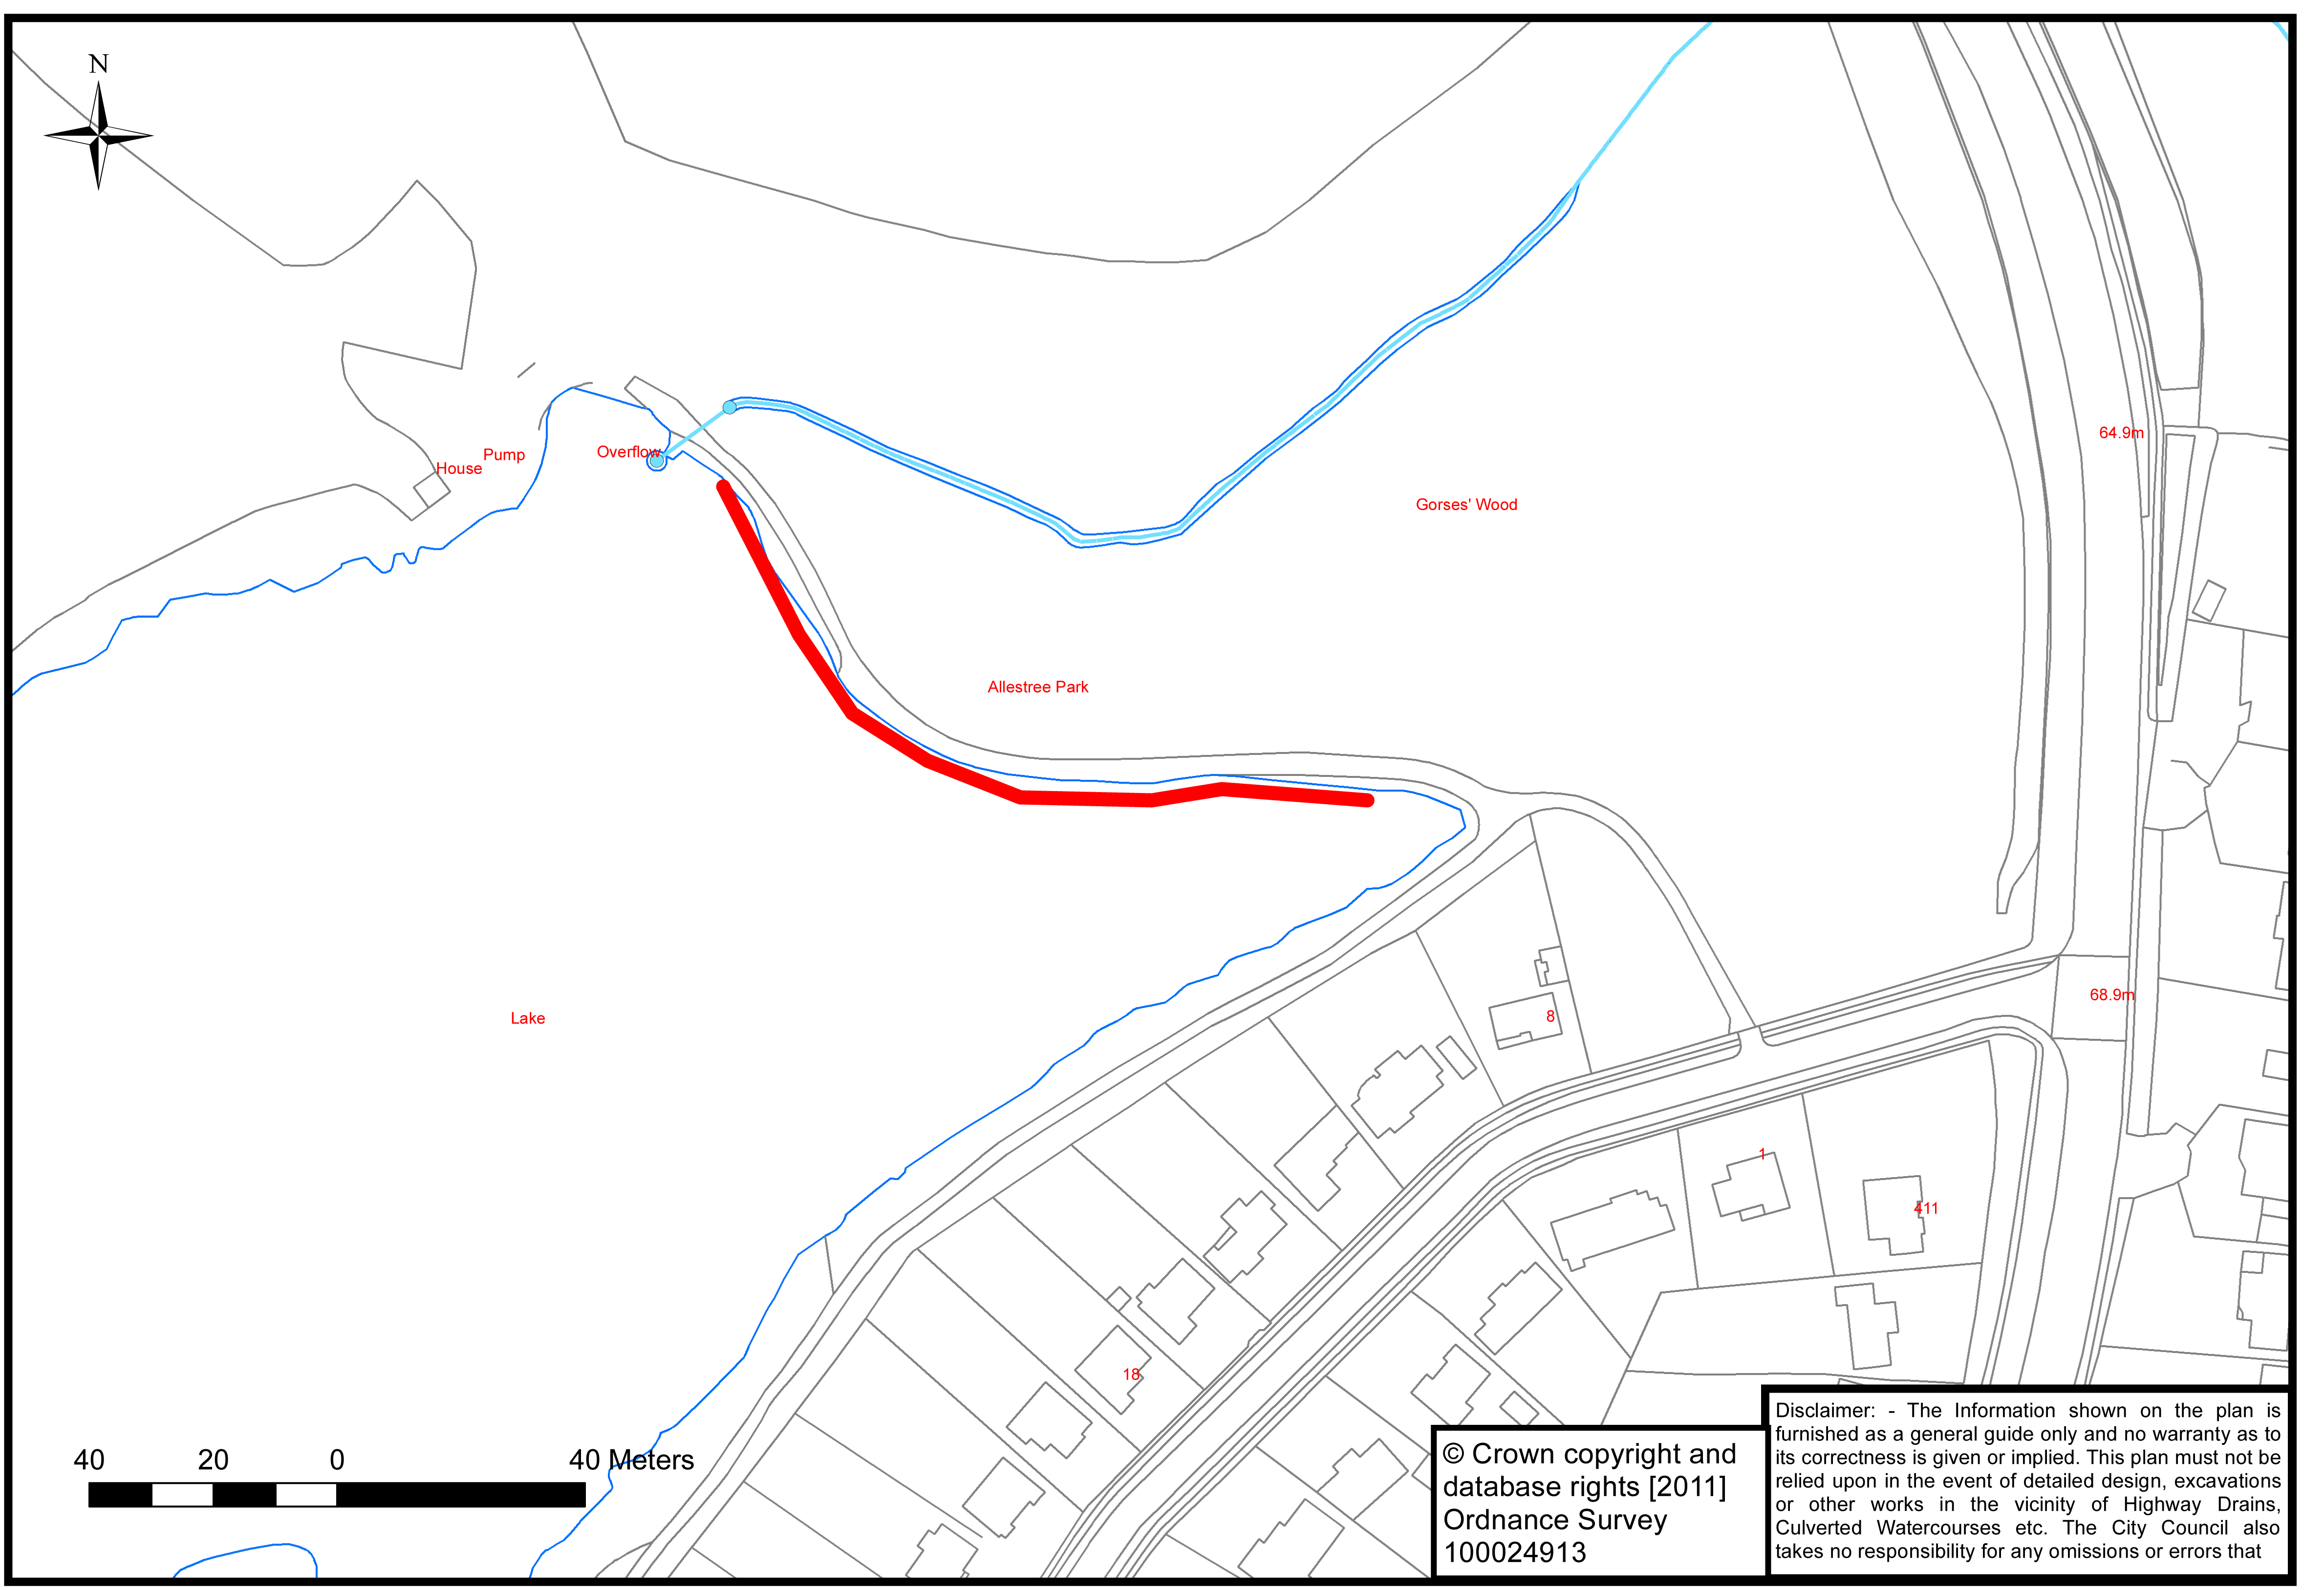 allestree reservoir act work 2